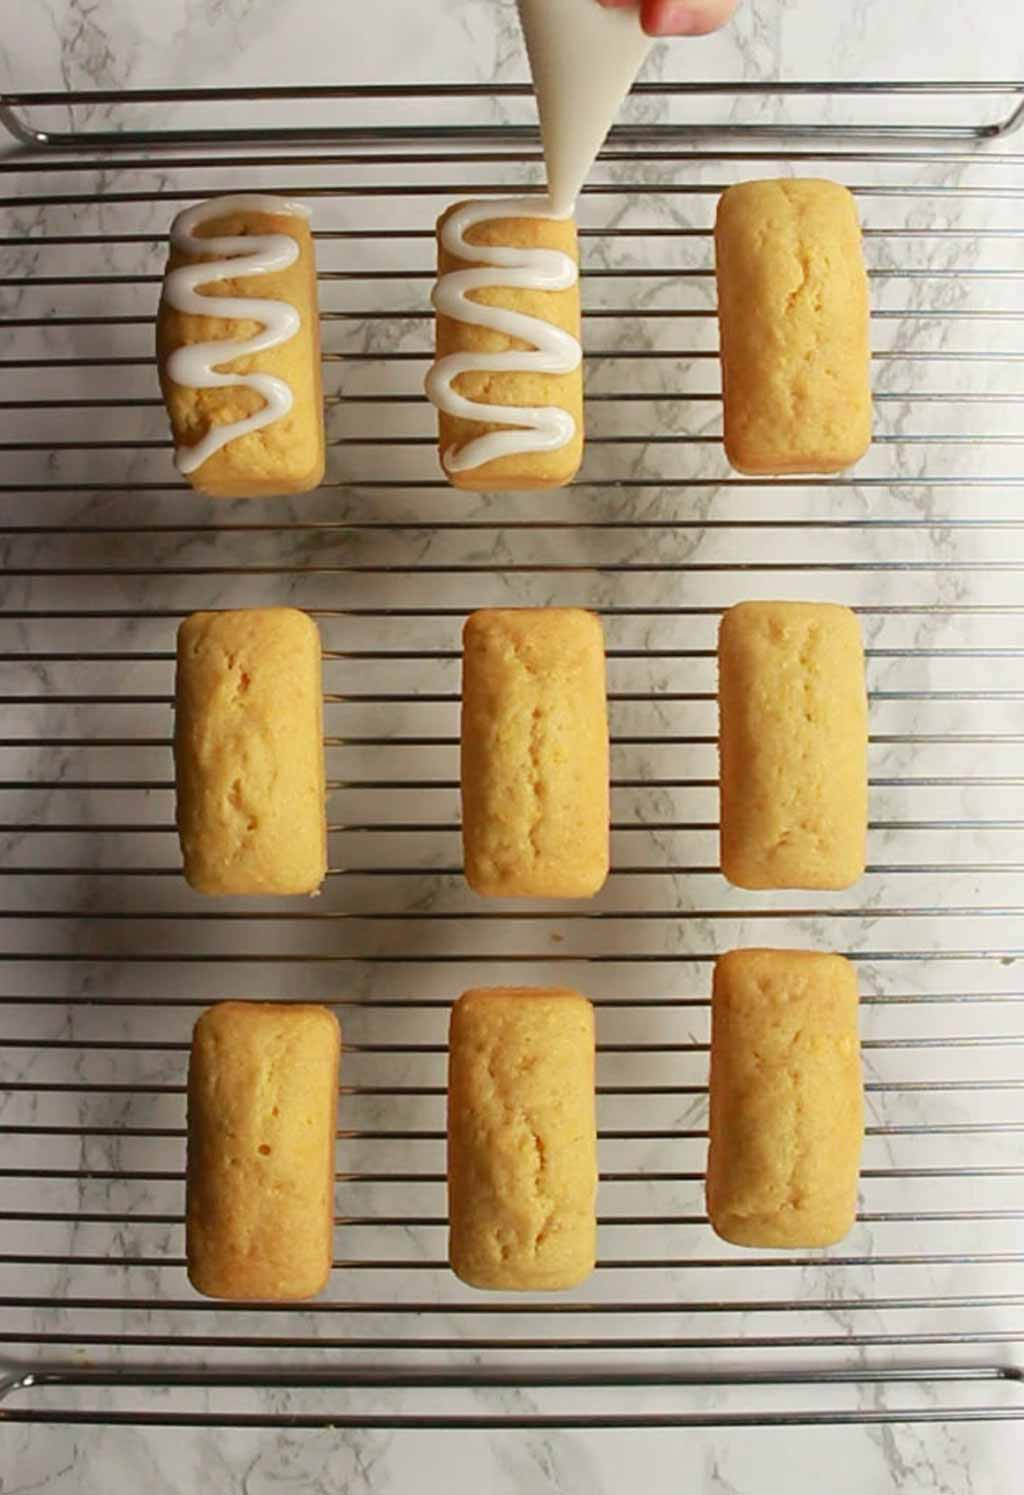 Piping Icing Onto The Baked Mini Loaves